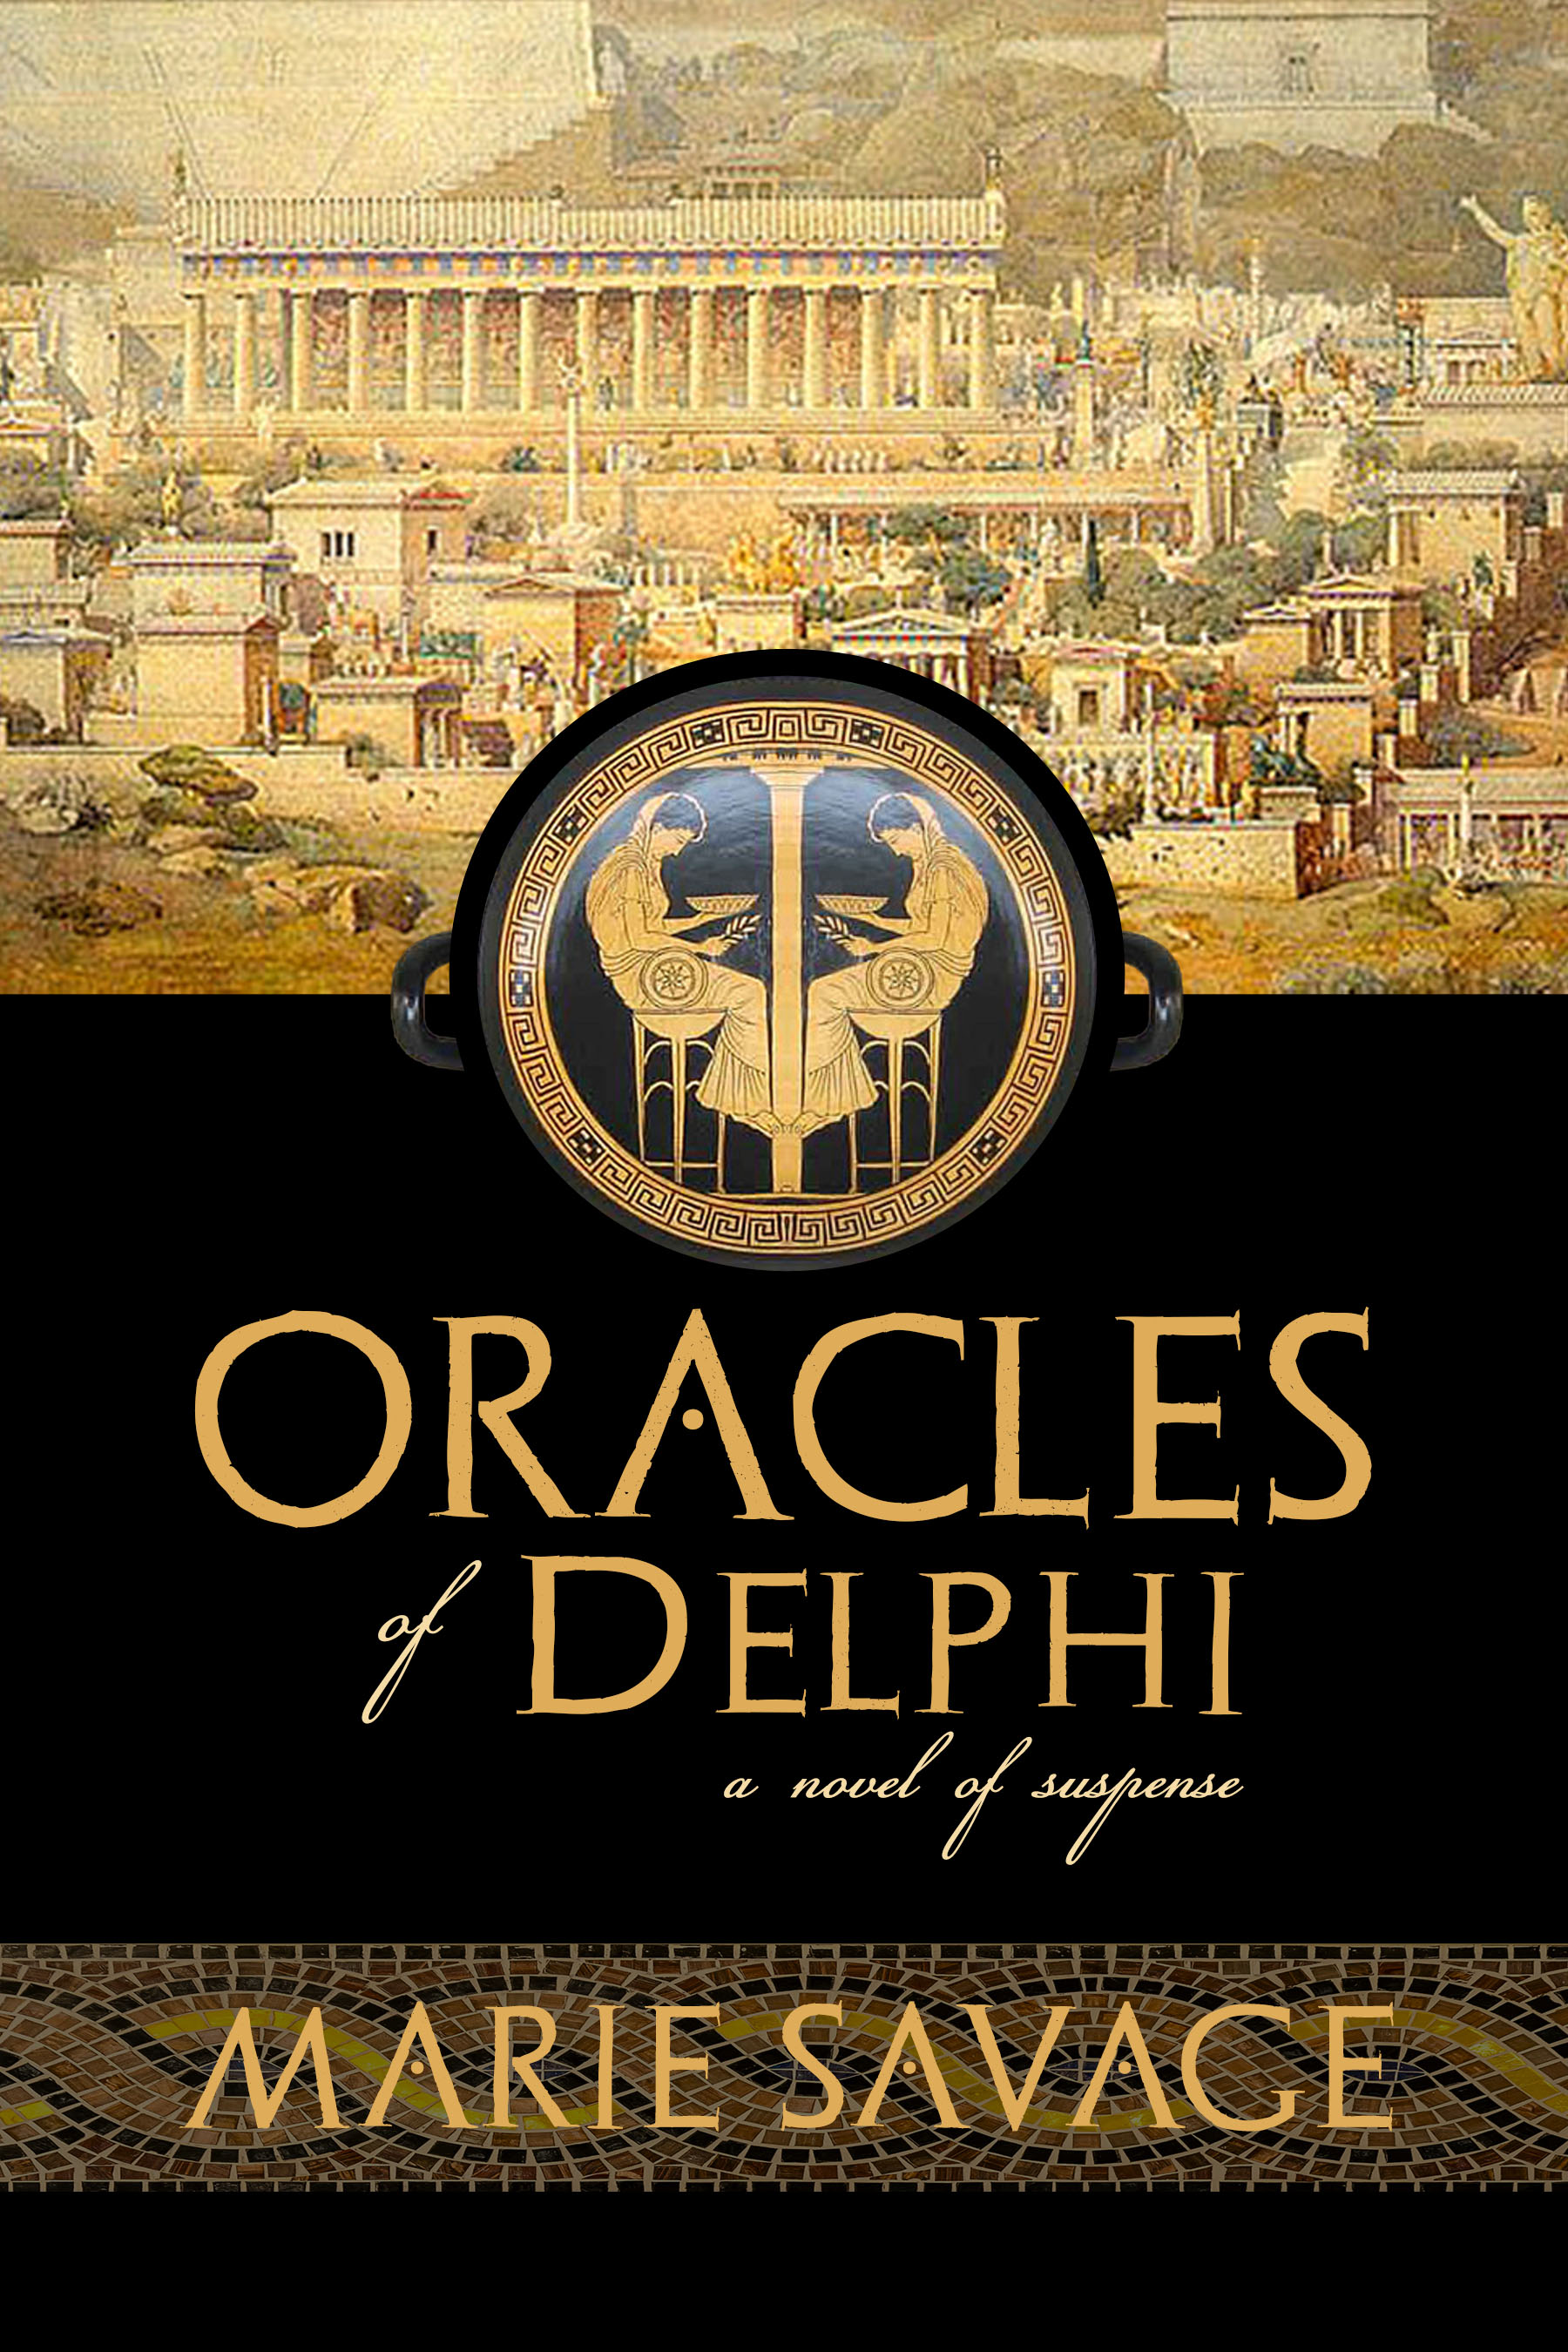 Oracles of Delphi